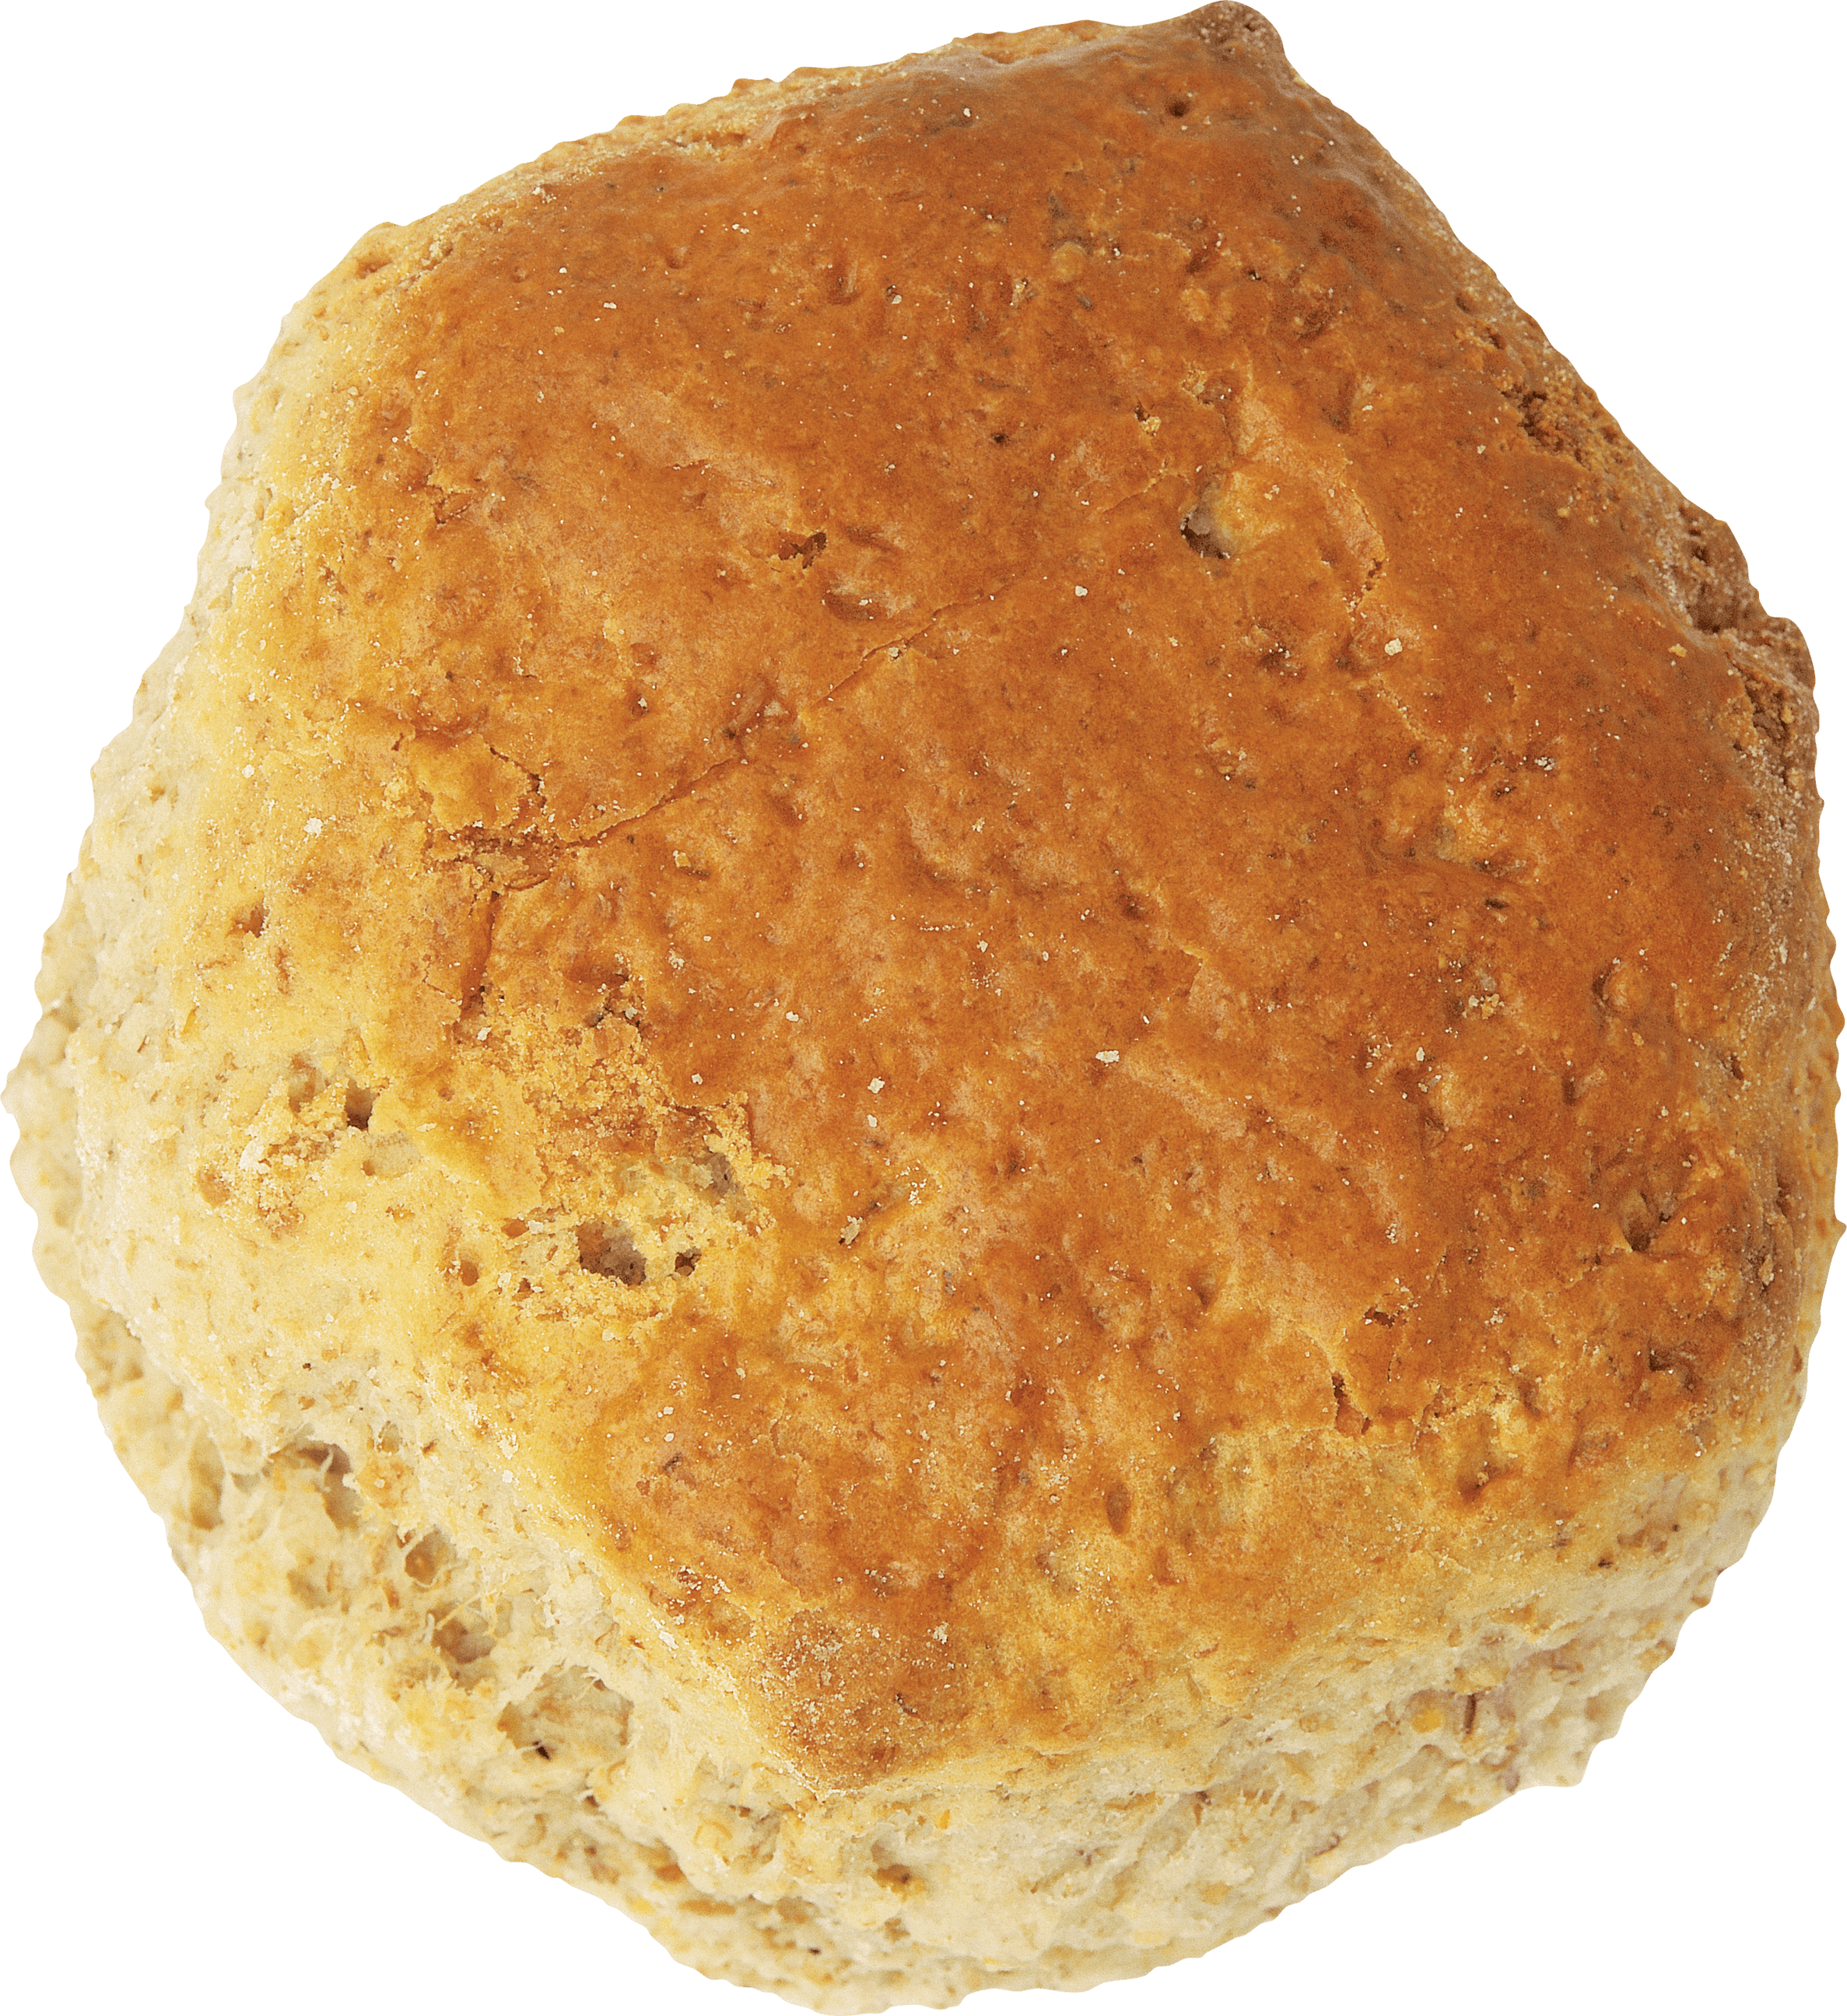 Bread Roll clipart cereal Bun Scone Bread transparent Bread